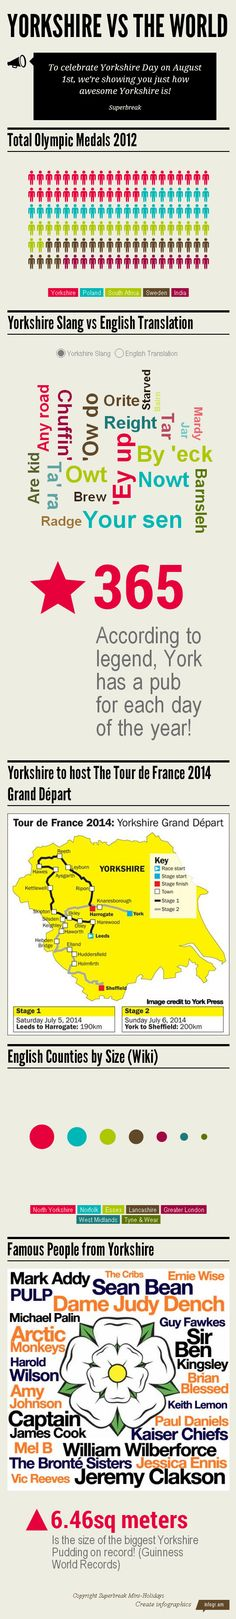 #Yorkshire vs. The World Infographic from Superbreakblog.com